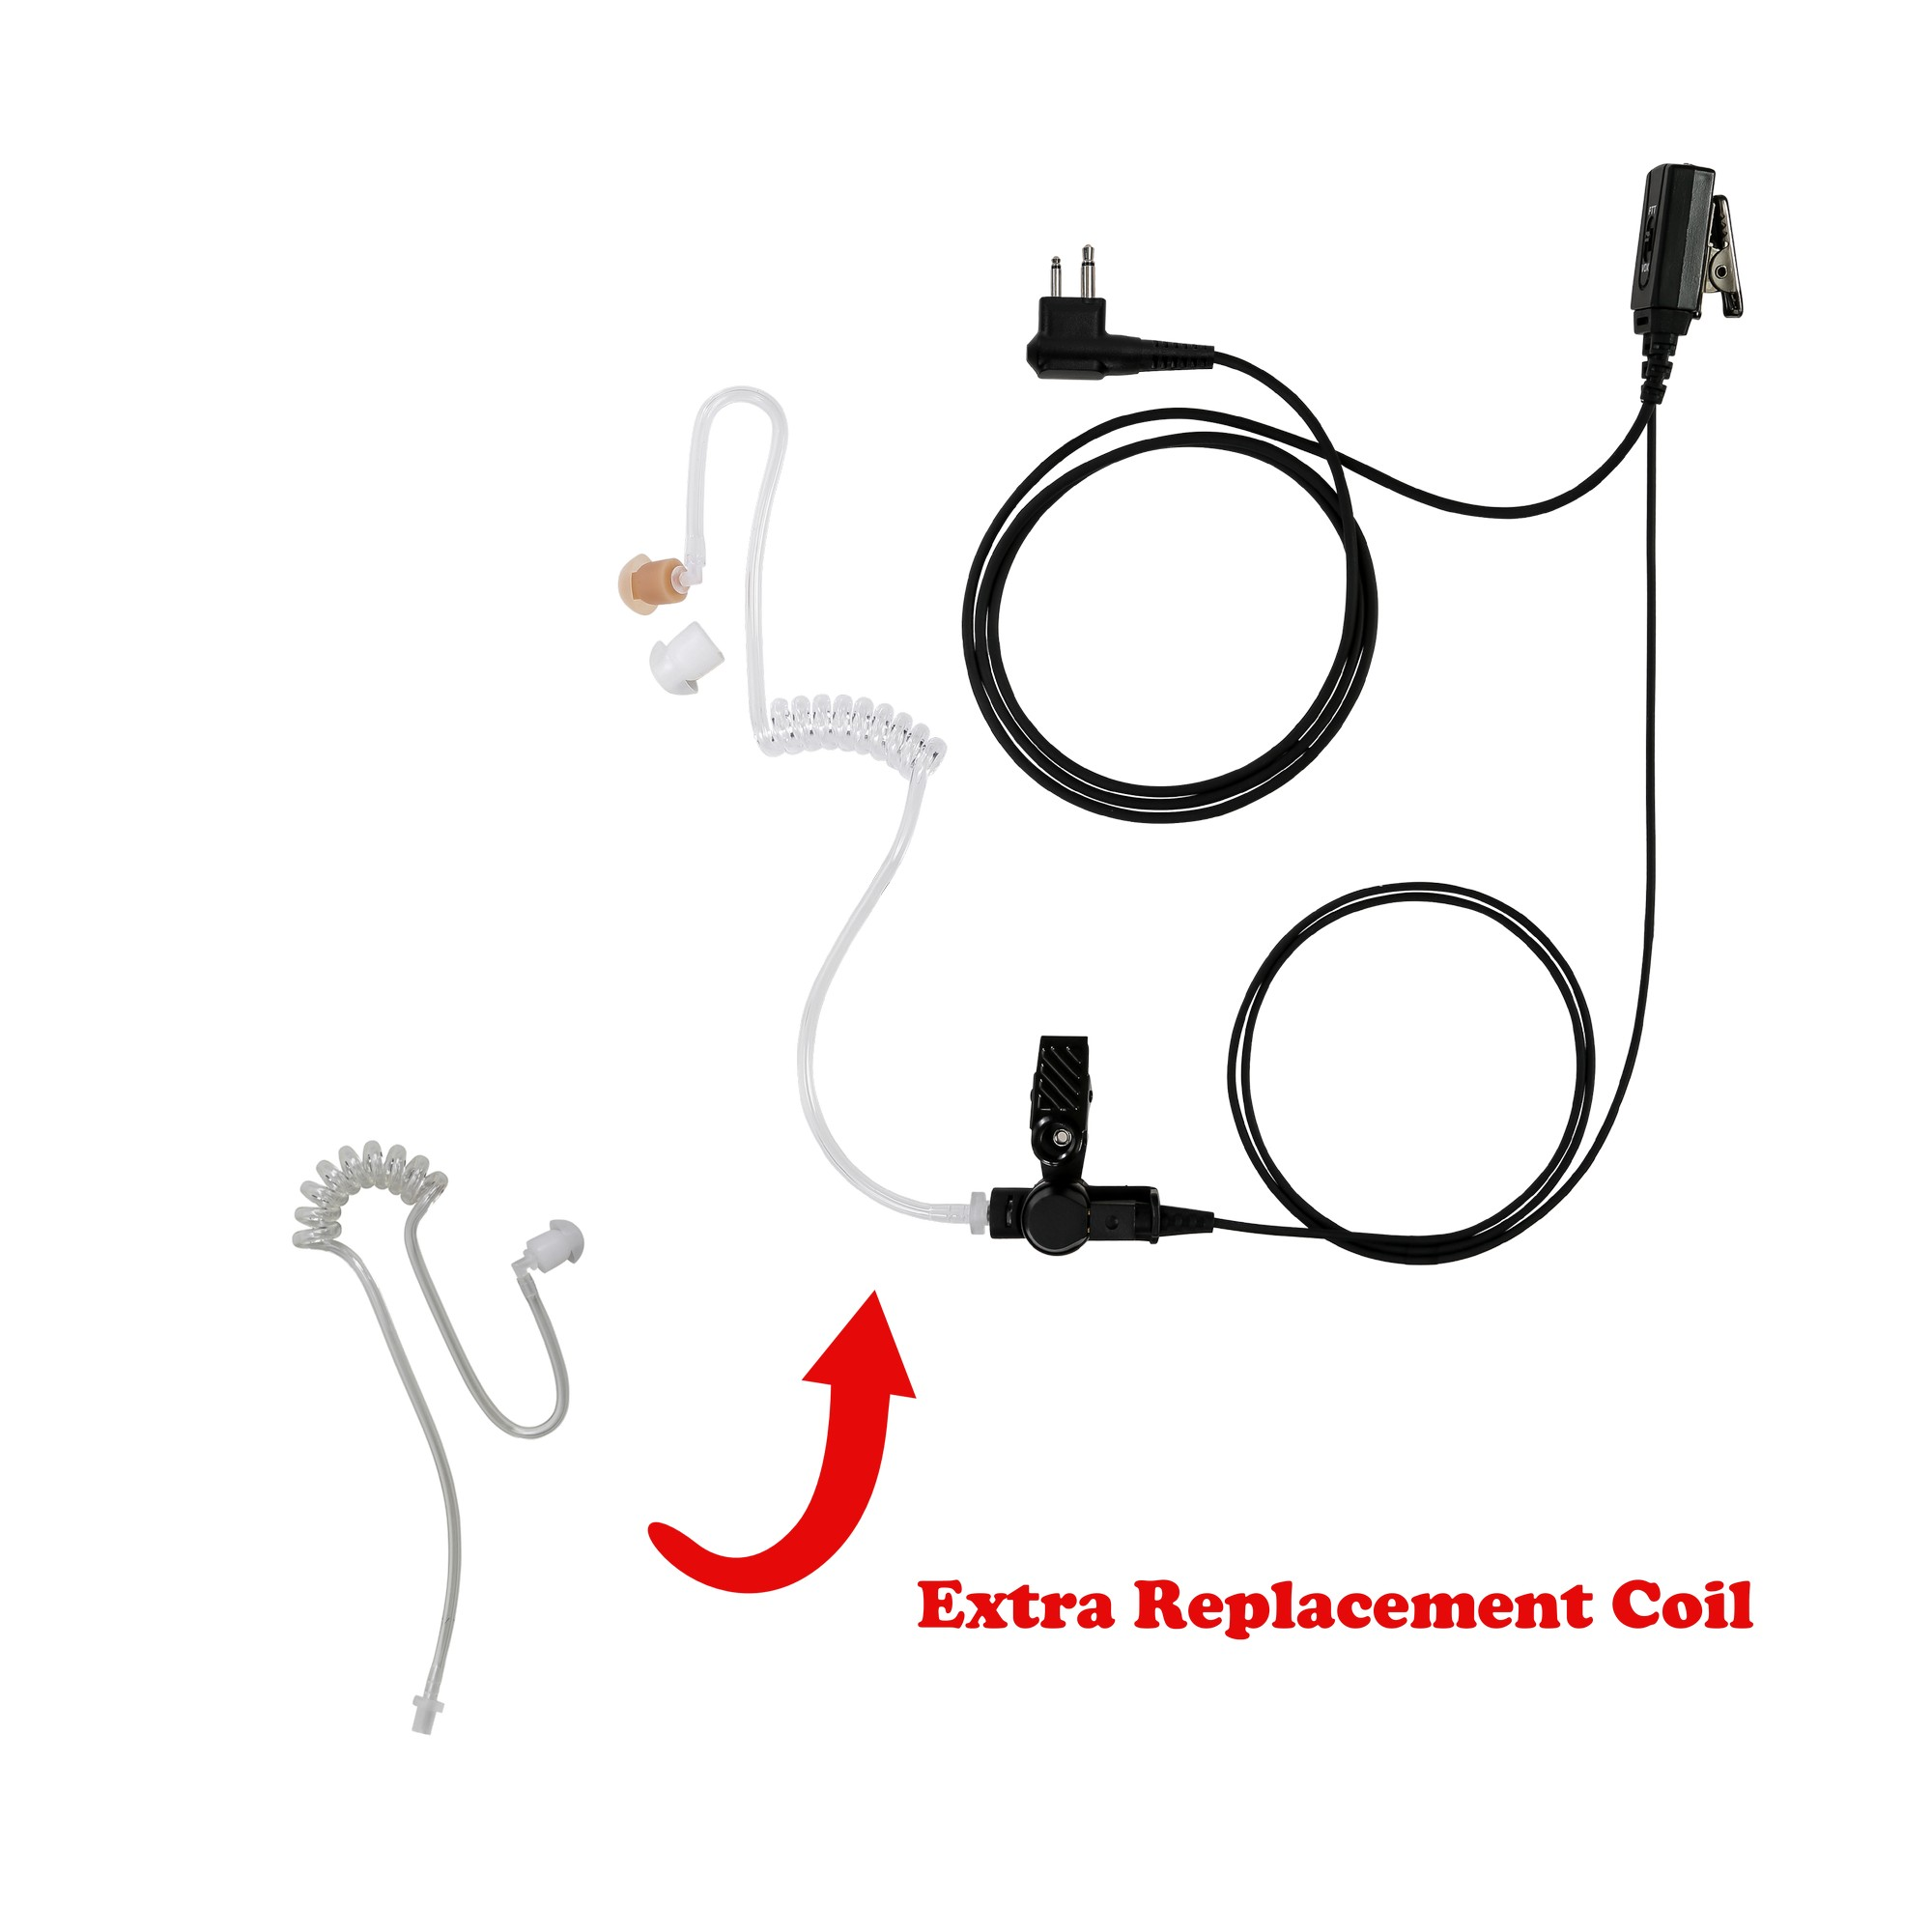 Maxtop ASK2425-M1 1-Wire Clear Coil Surveillance Kit